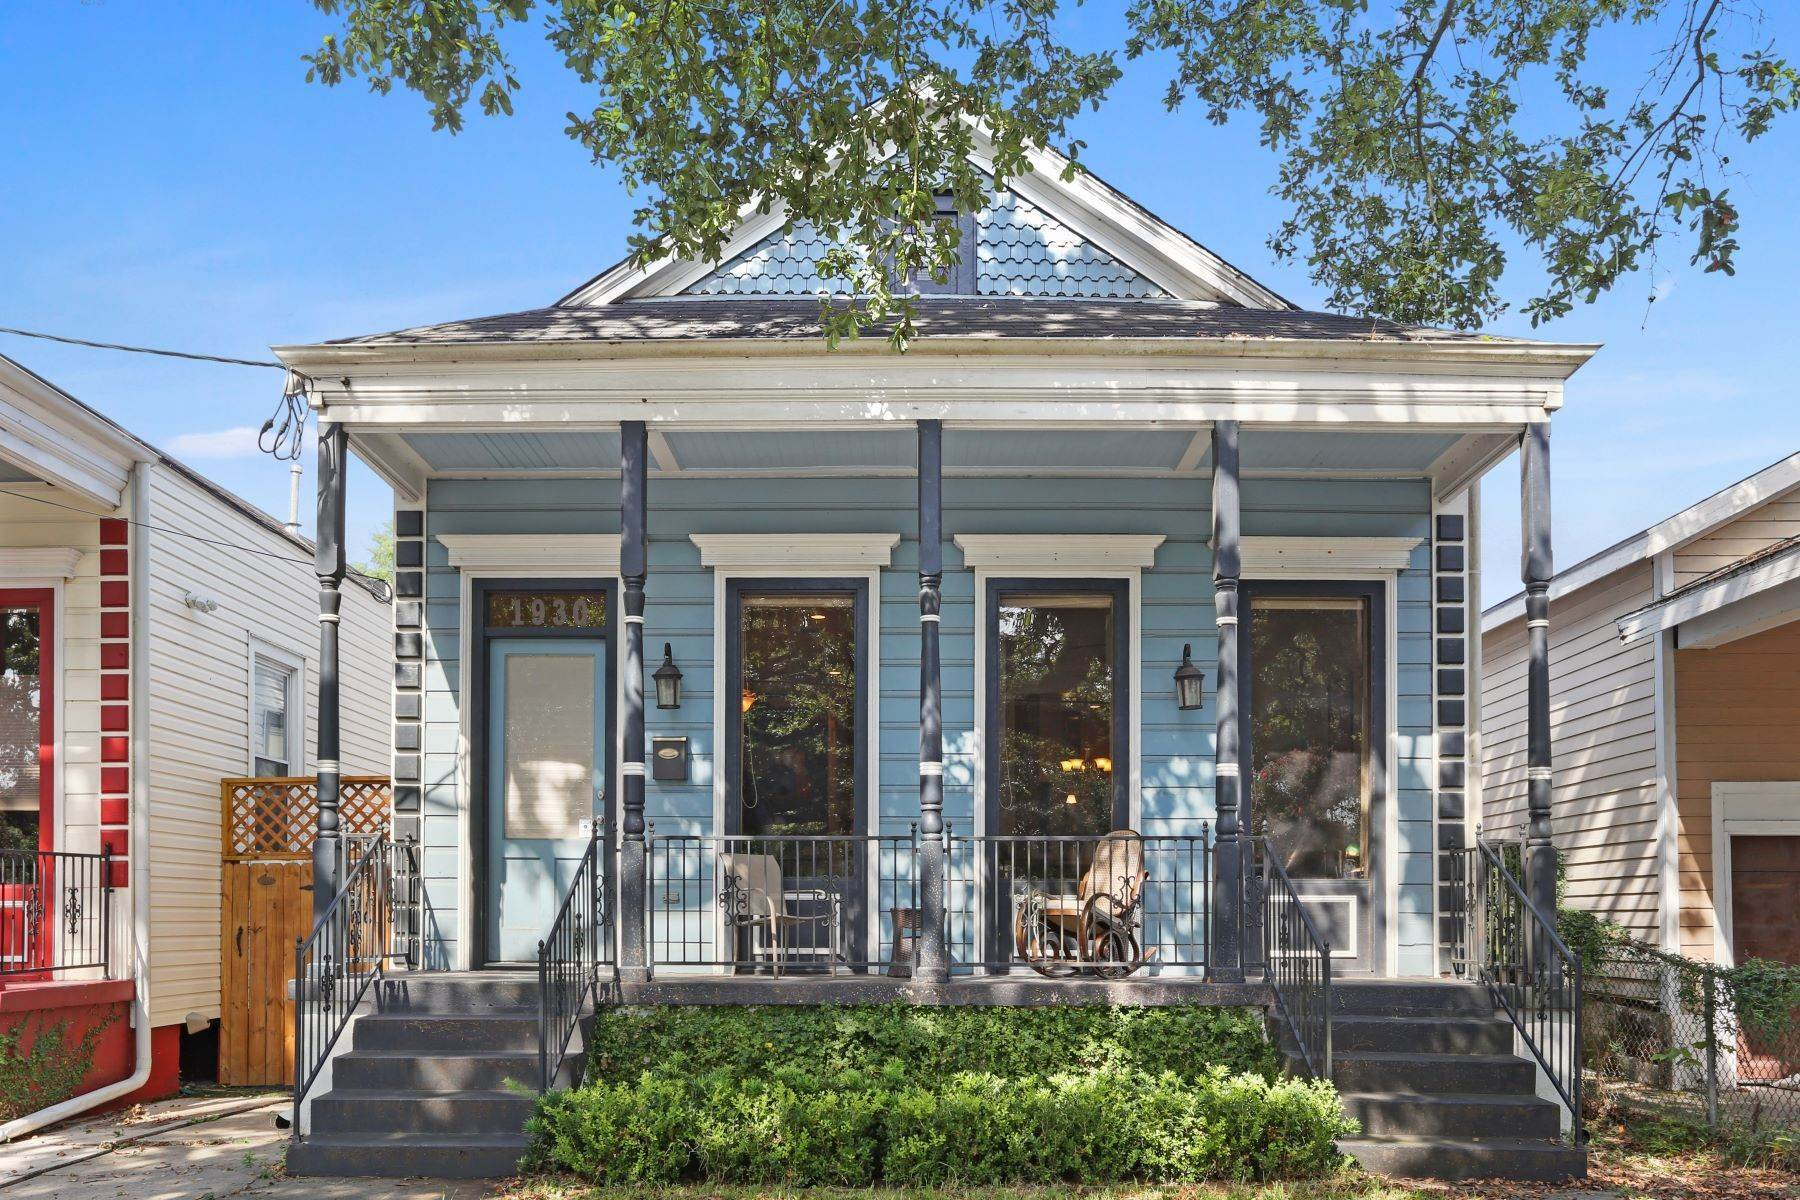 Single Family Homes for Sale at Elysian Fields Victorian 1930 Elysian Fields New Orleans, Louisiana 70117 United States